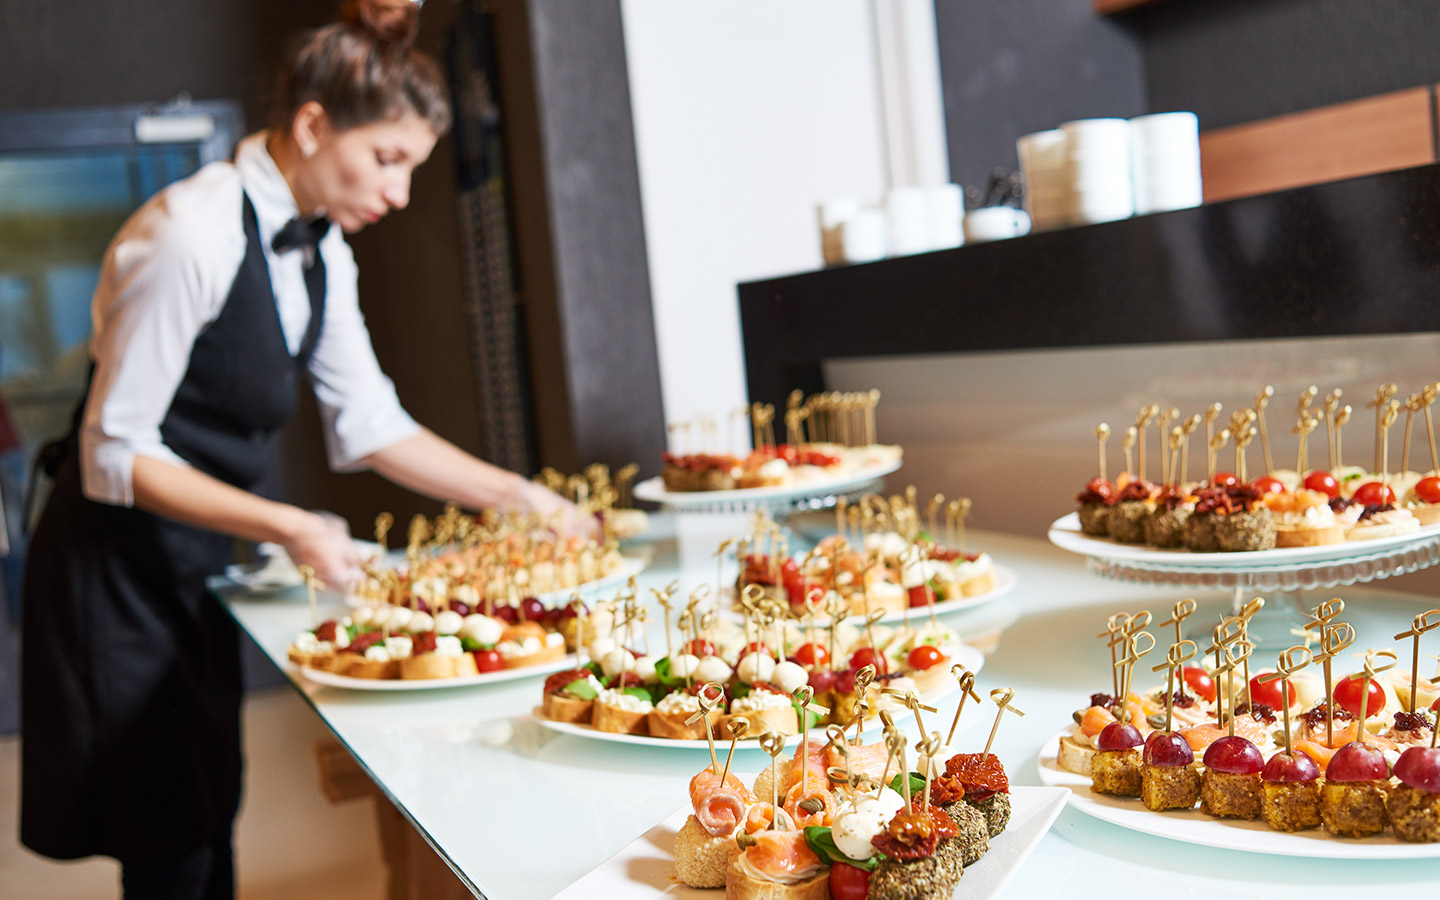 The advantages of hiring catering services